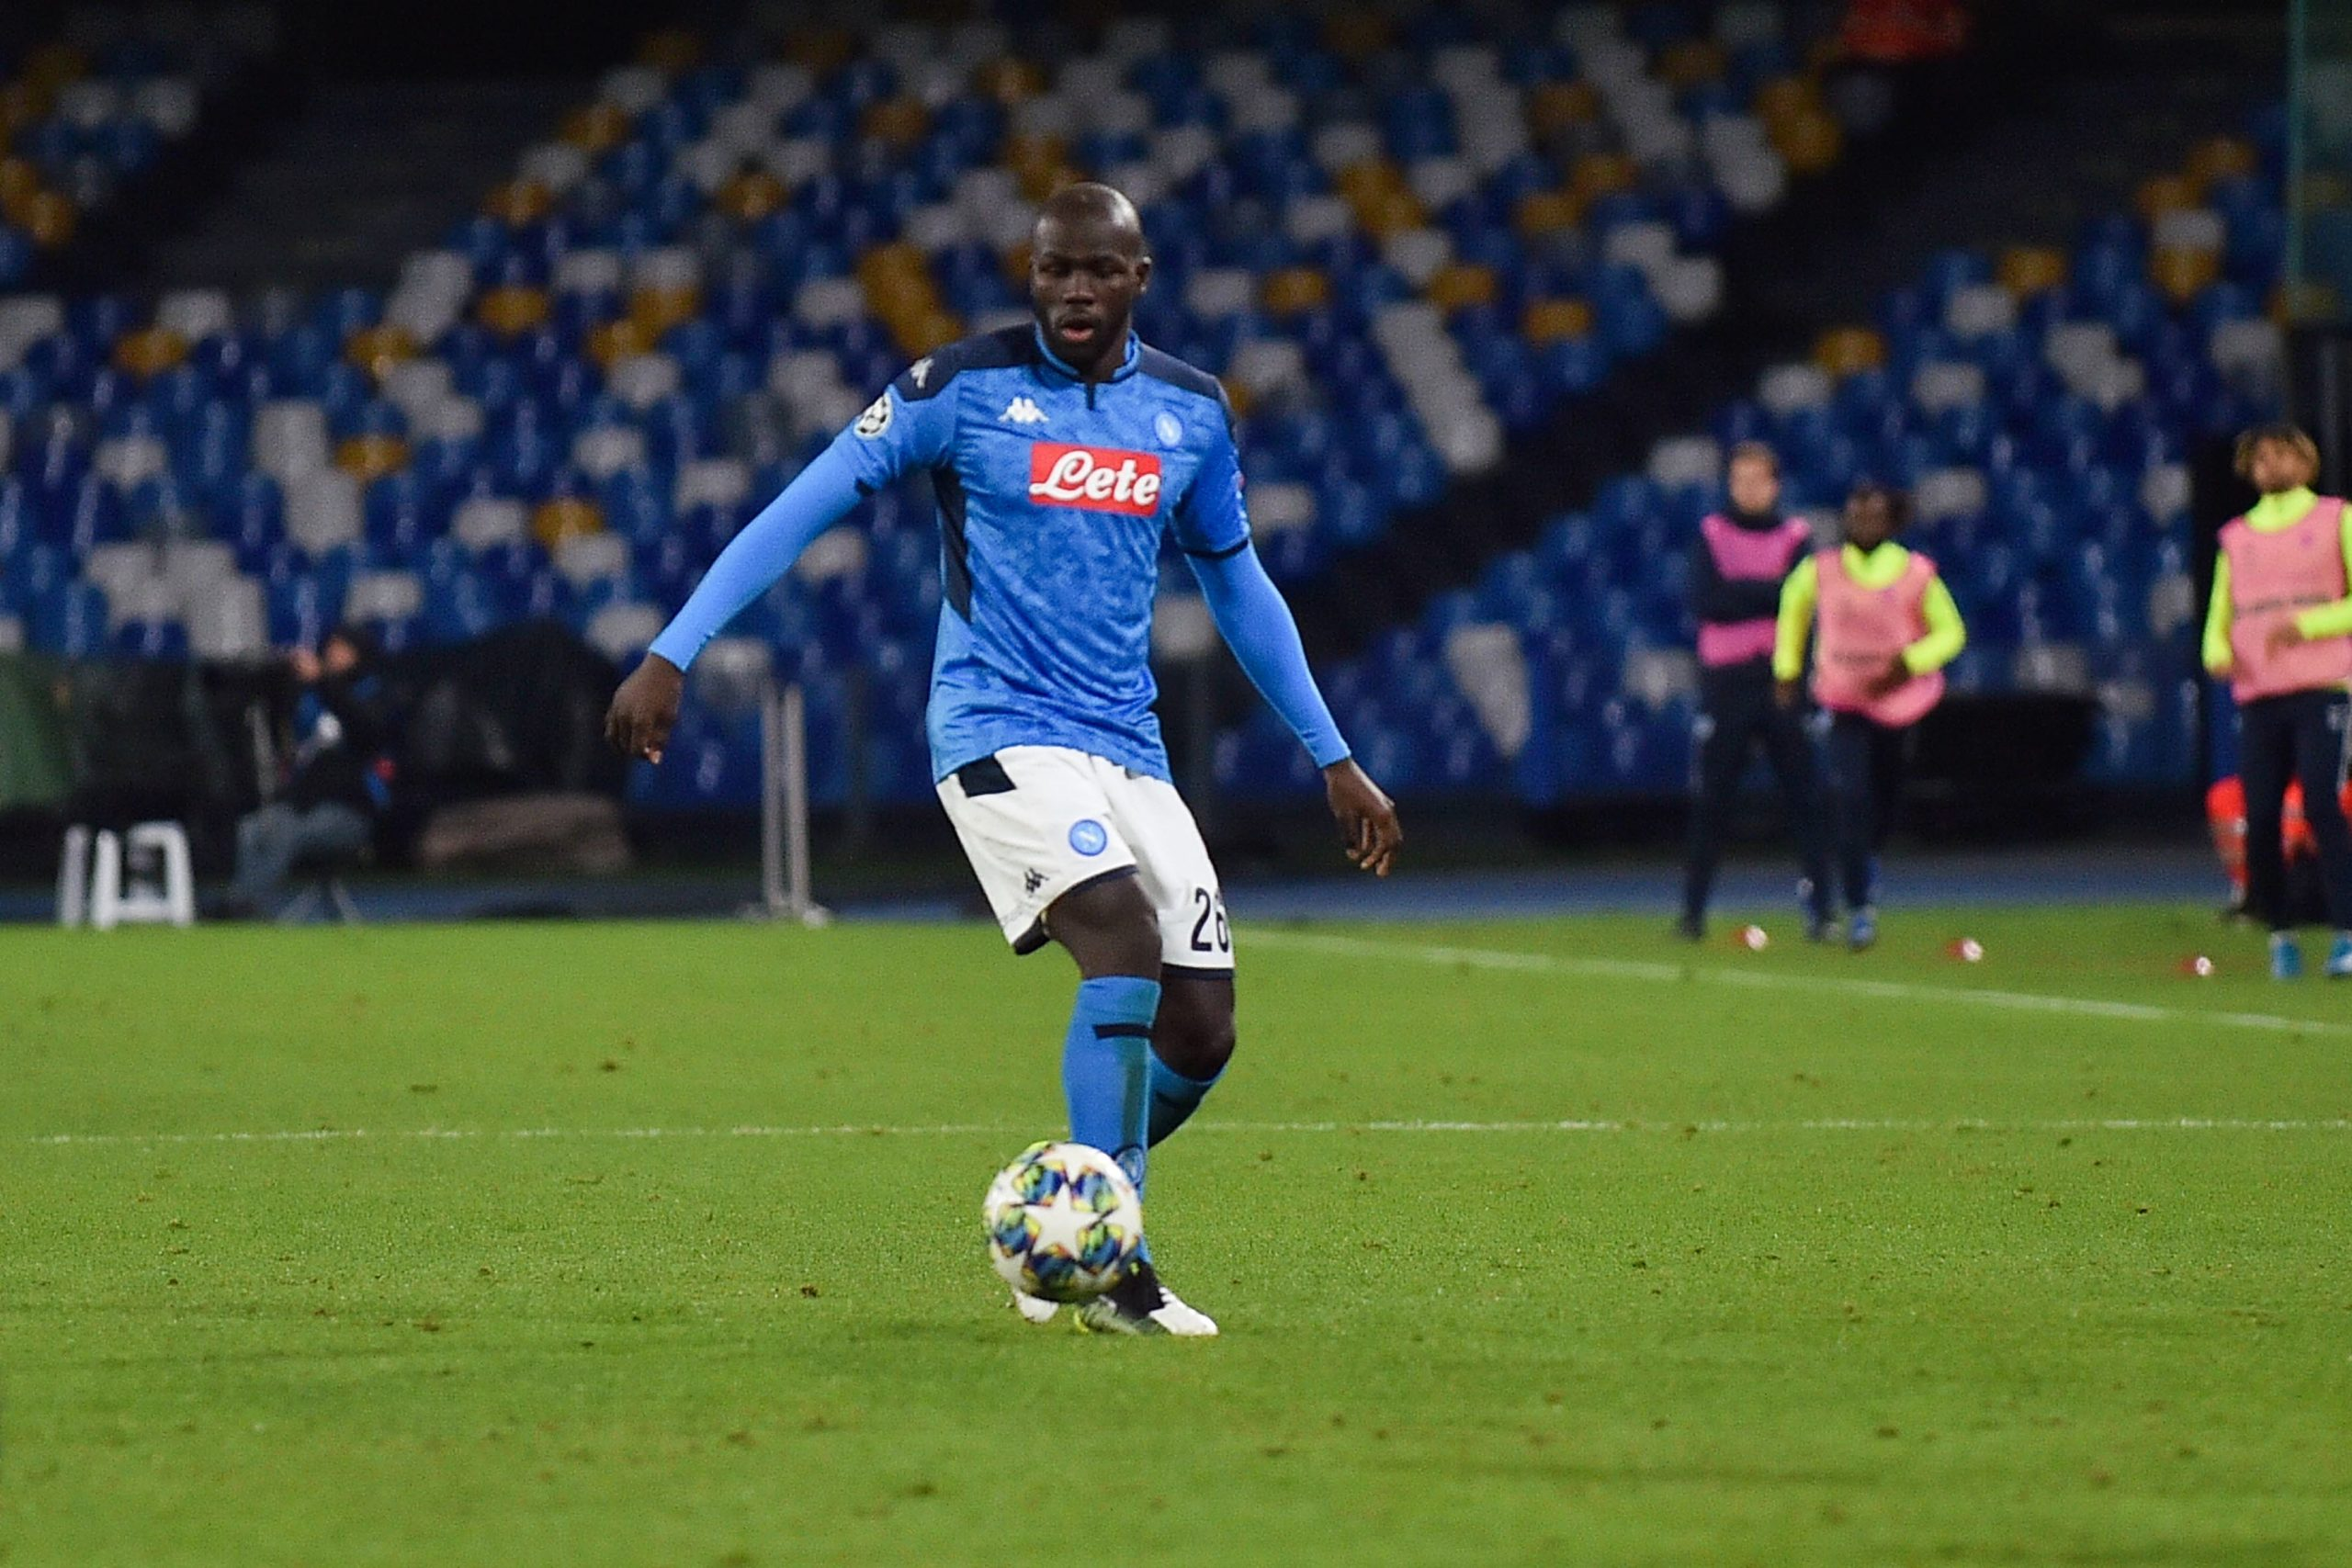 Mercato- Manchester City: Pep Guardiola serait un grand fan de Kalidou Koulibaly !